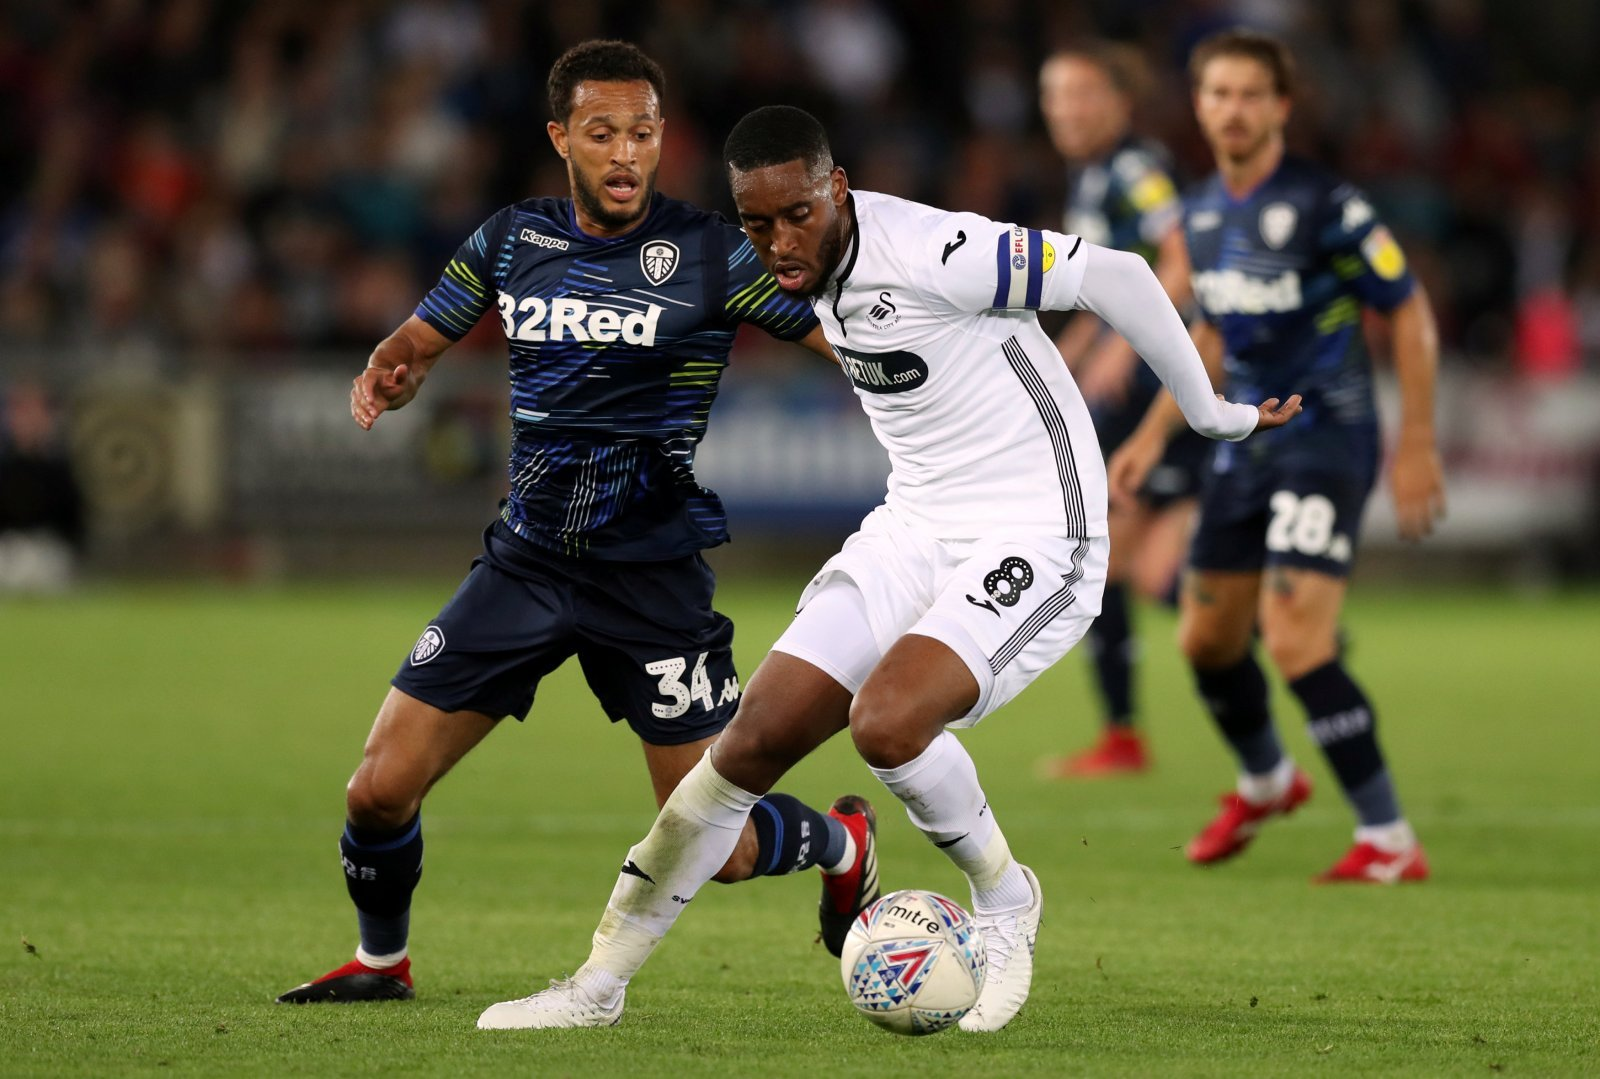 Lewis Baker set to have his loan at Leeds terminated